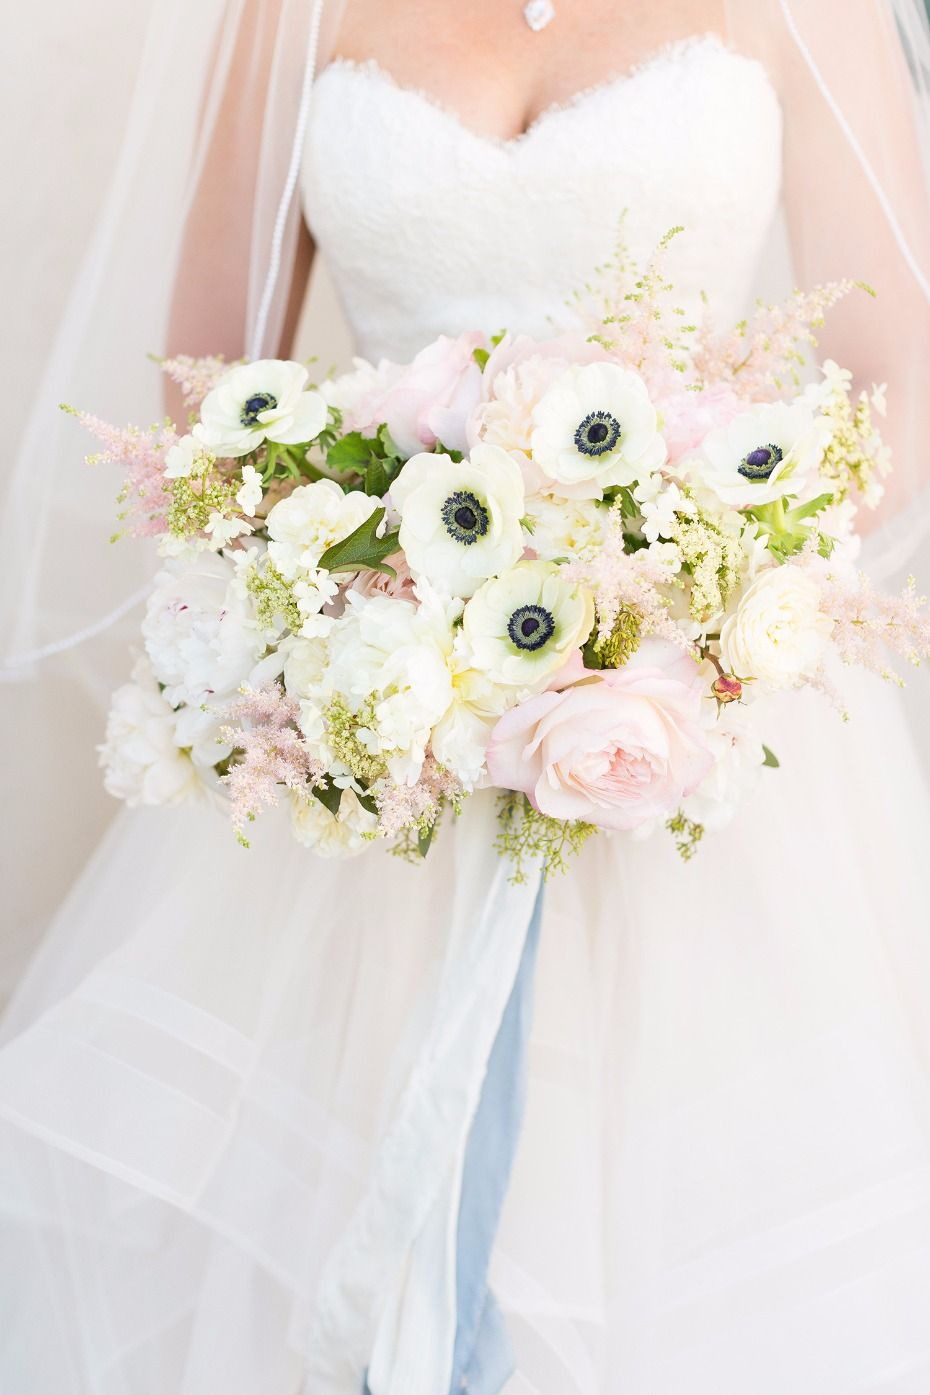 Get that spring feeling at this whimsical winery wedding blush